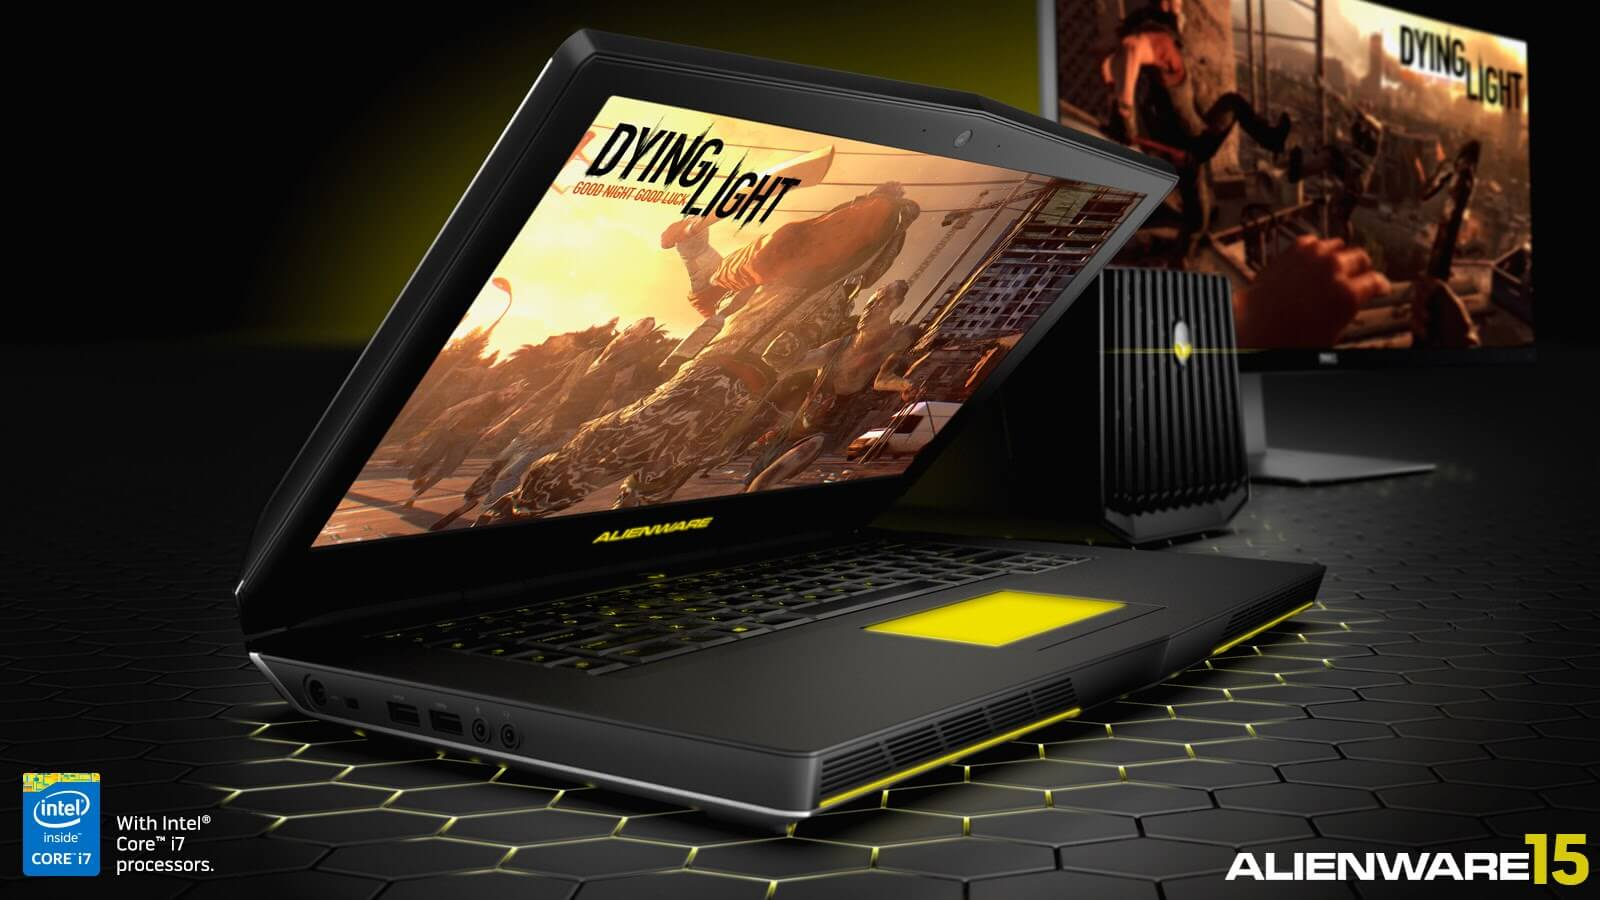 Alienware 15 best alienware gaming laptop